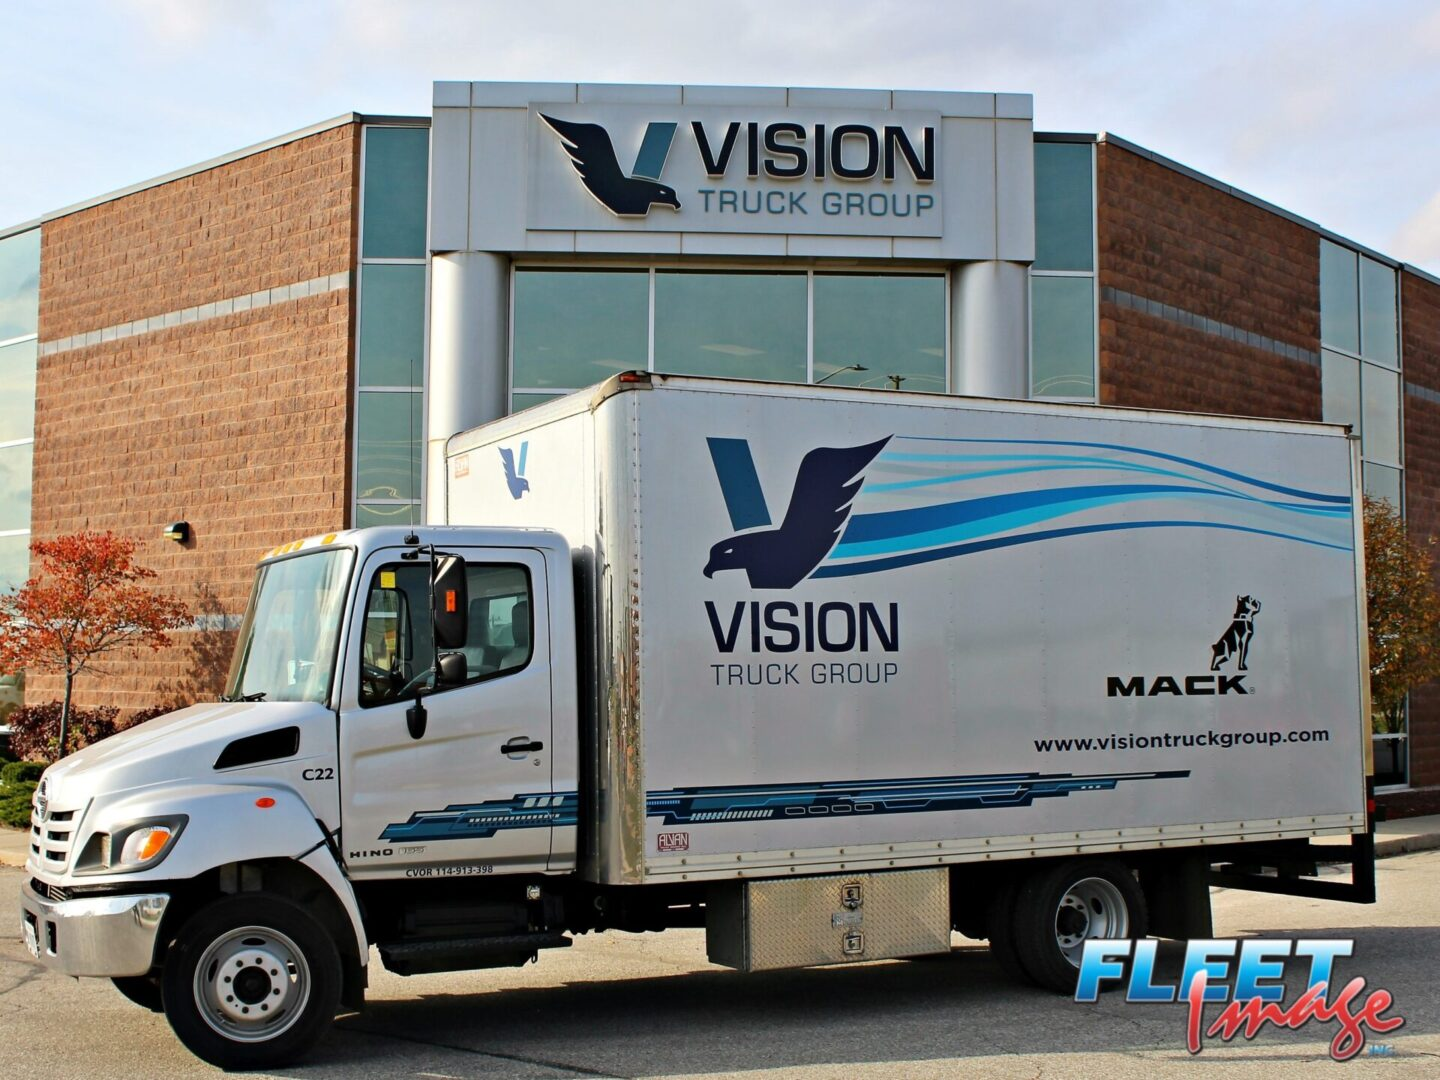 VISION TRUCK GROUP decal sticker on a truck